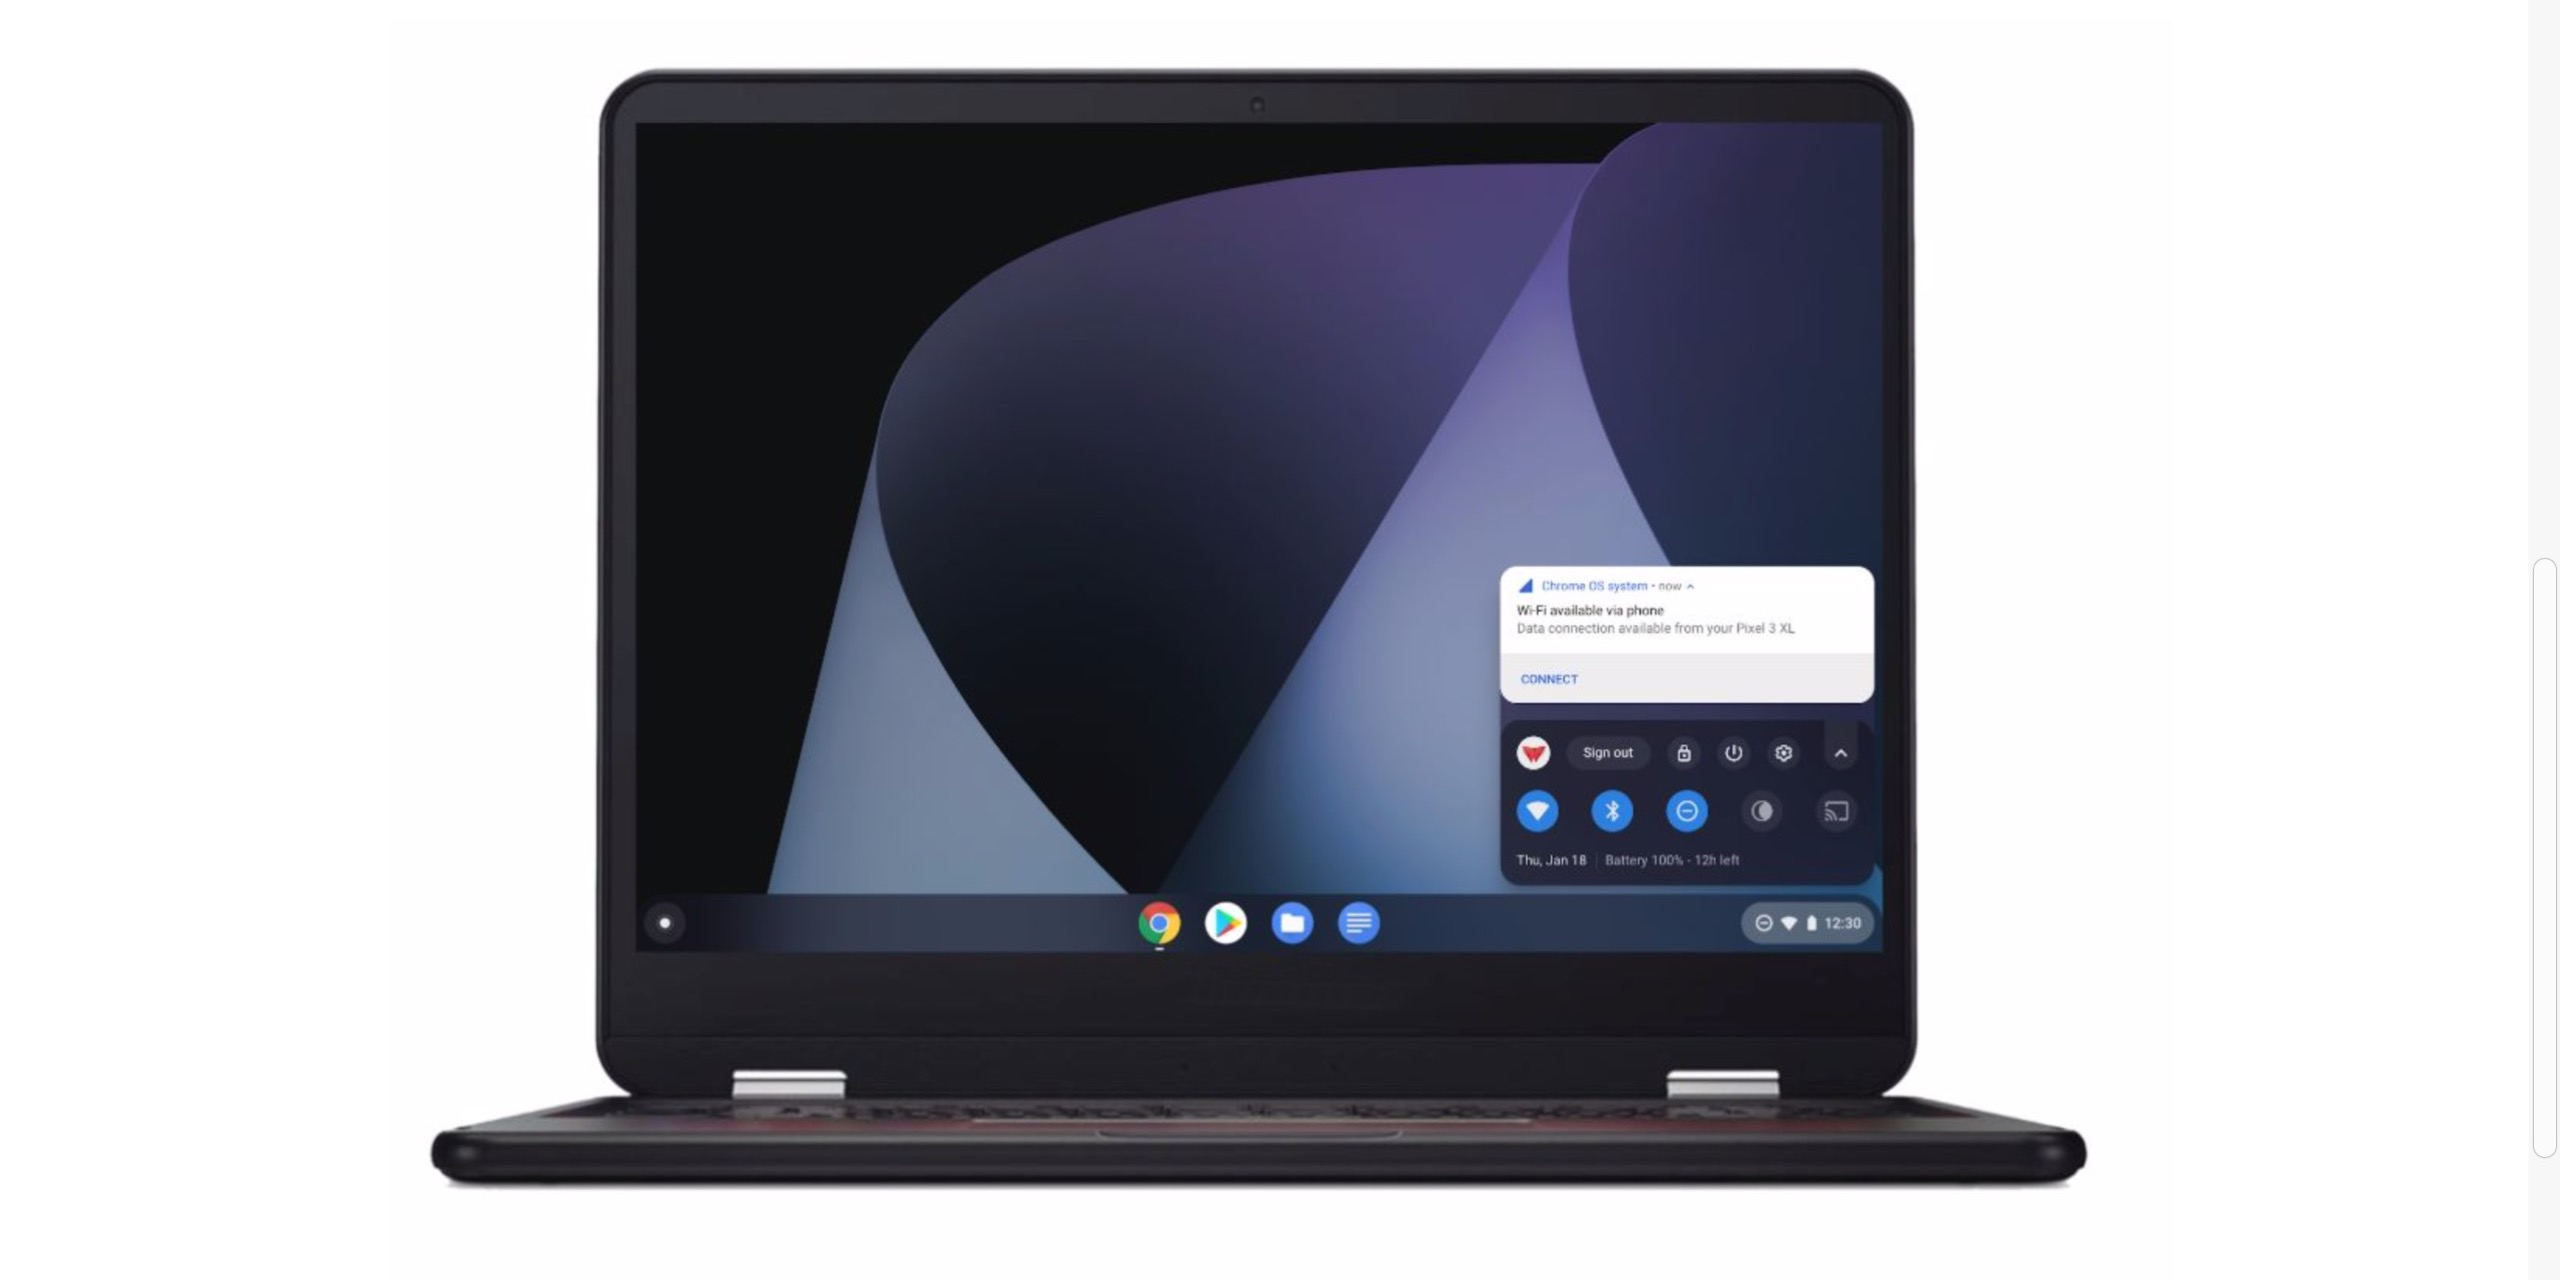 Chrome OS Instant Tethering now available on 15 more